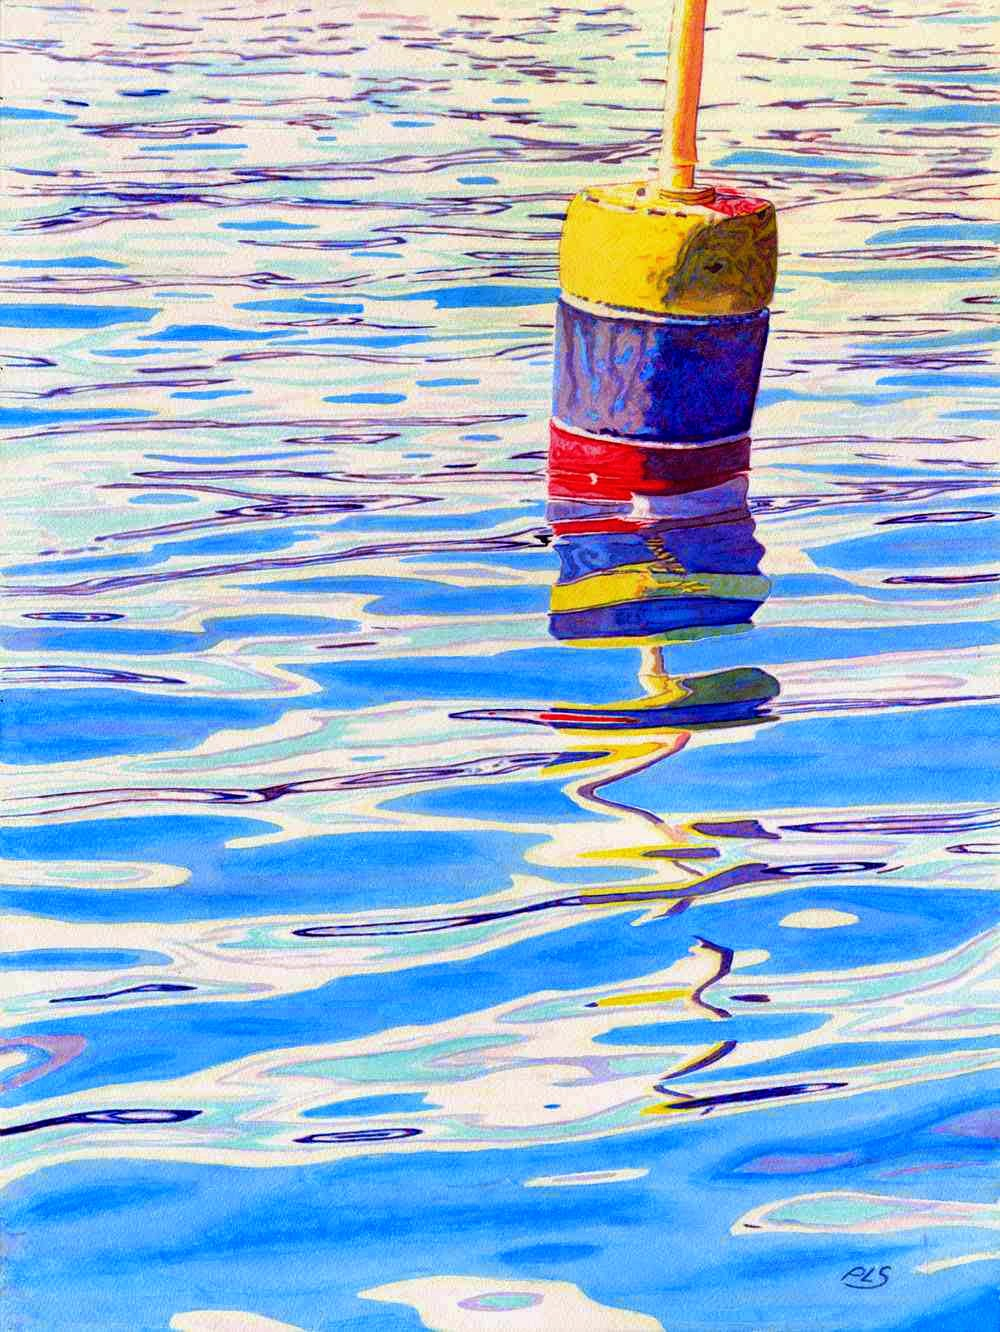 "Buoy Surreal II - Watercolor 18"" x 24"""